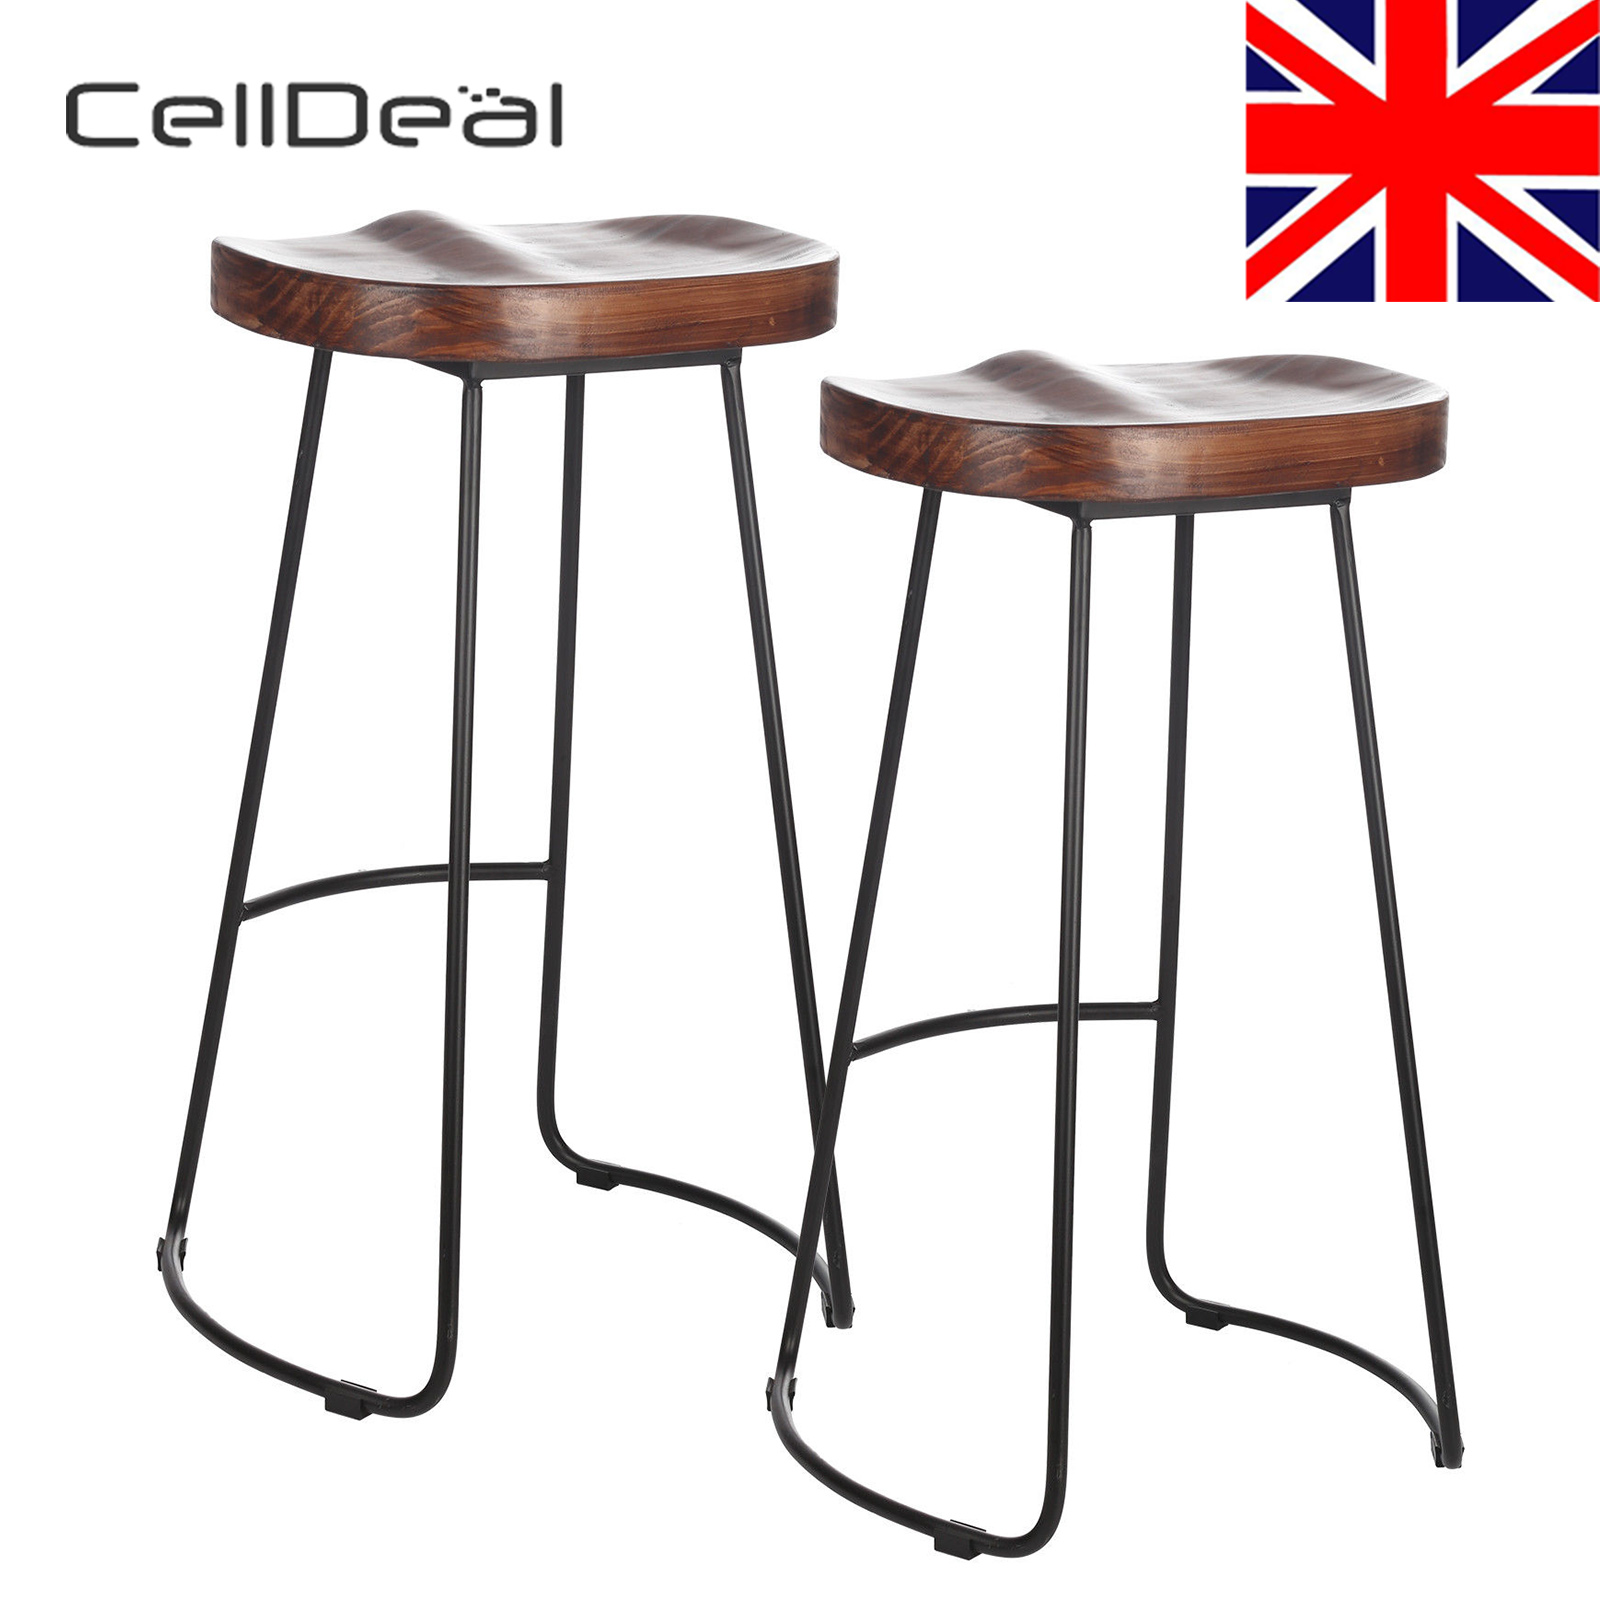 Set Of 2 Industrial Bar Stools Kitchen Breakfast High Chair Wood Pub Seat Bar Stools Modern Bar Stool Tables